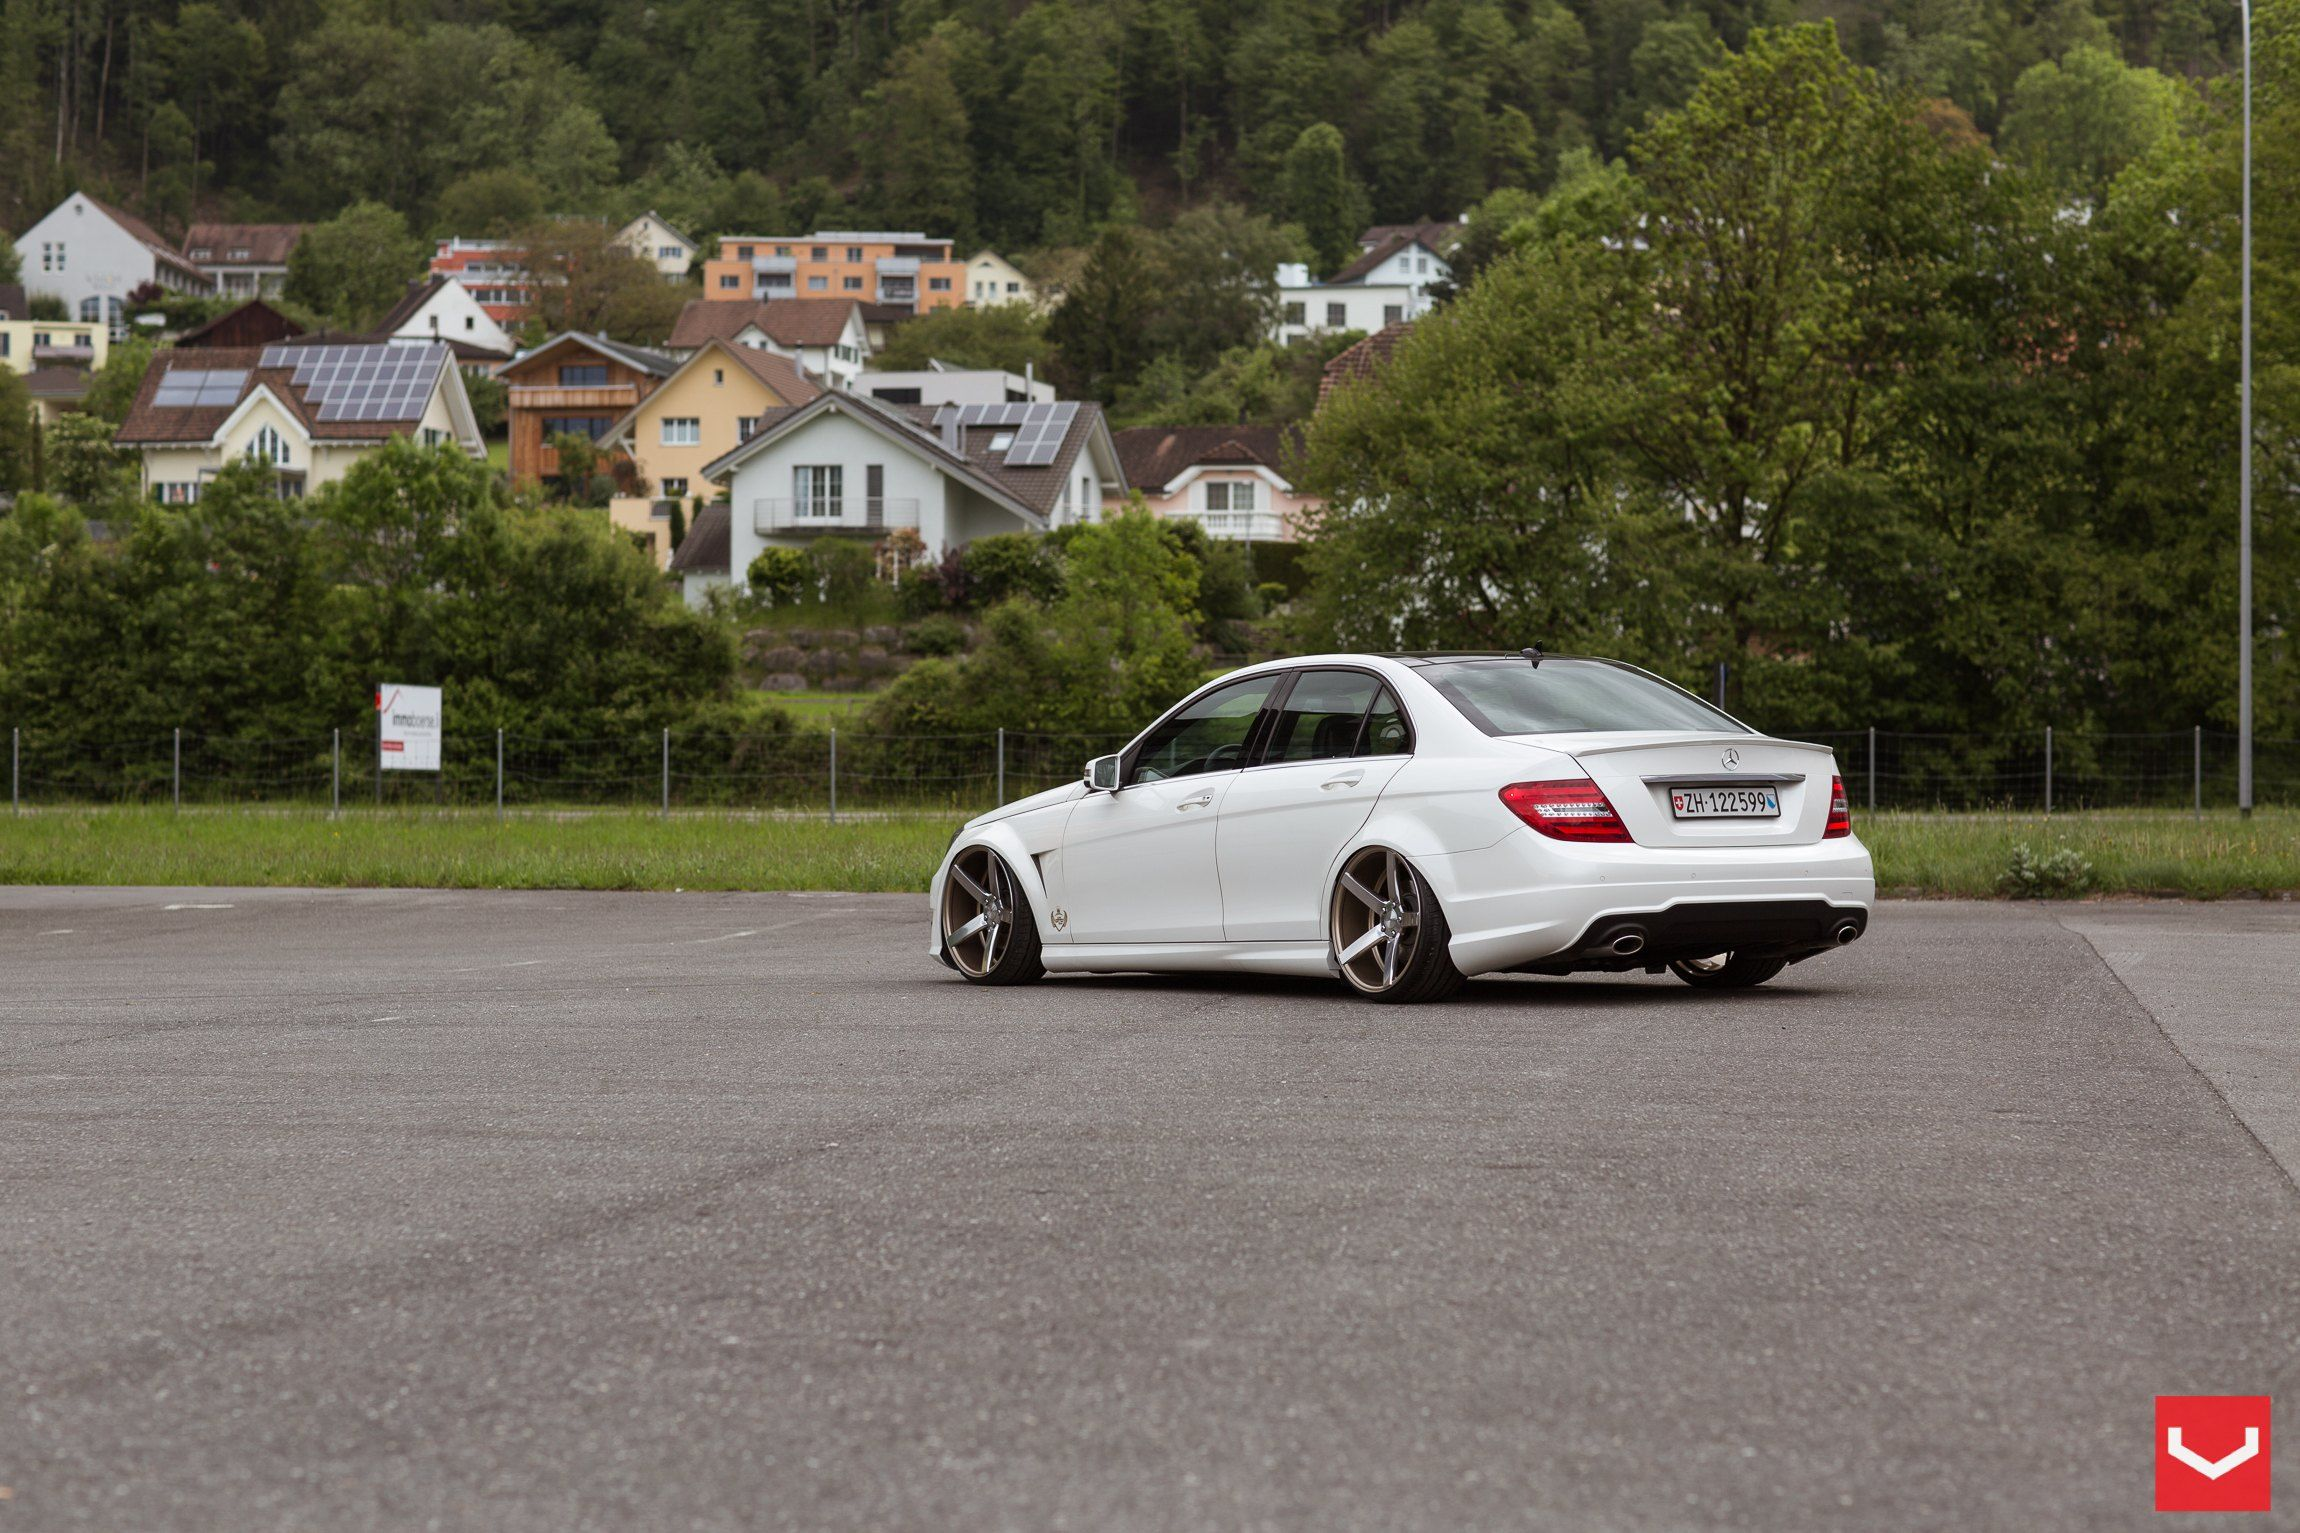 Stanced Mercedes C Class with A Few Aftermarket Parts